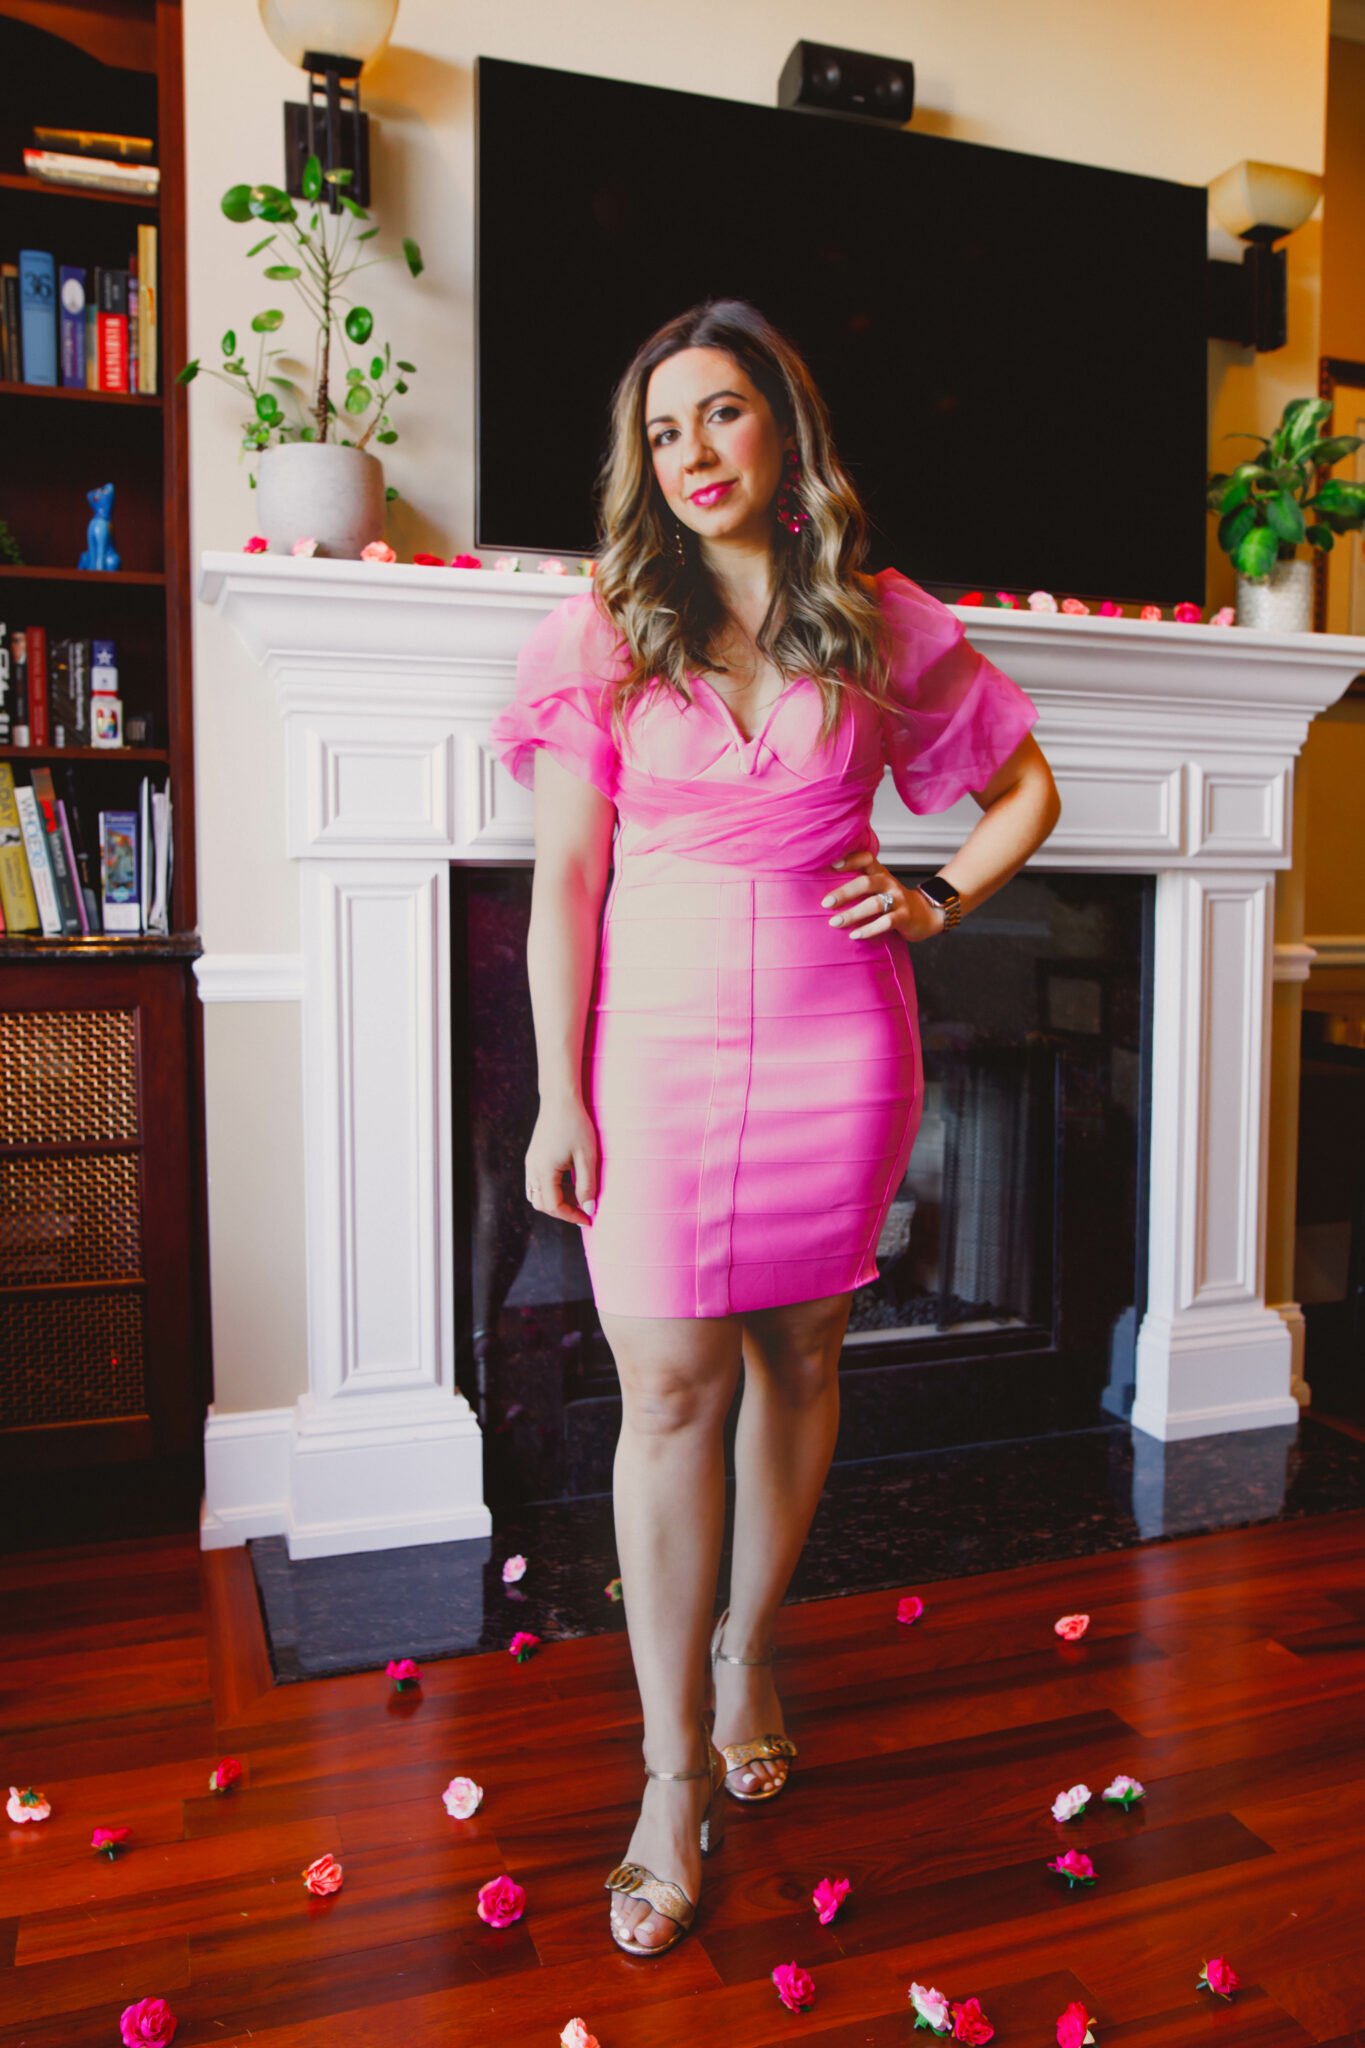 Little Pink Dress by popular Chicago fashion blog, Glass of Glam: image of a woman wearing a Missguided dress, Gucci heels, and pink statement earrings.